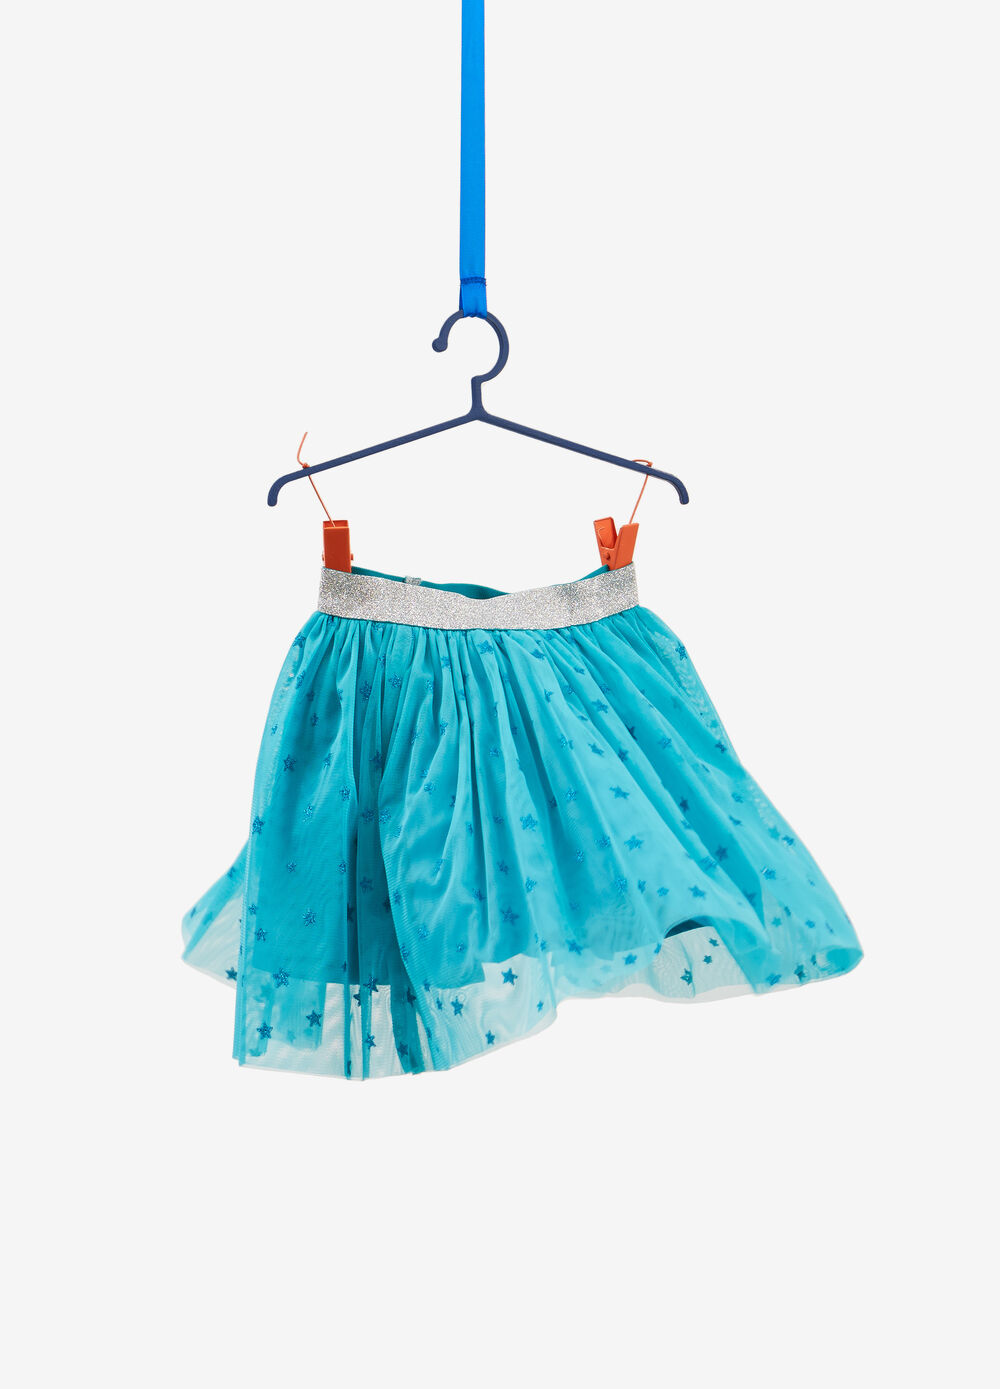 Tulle skirt with glitter stars